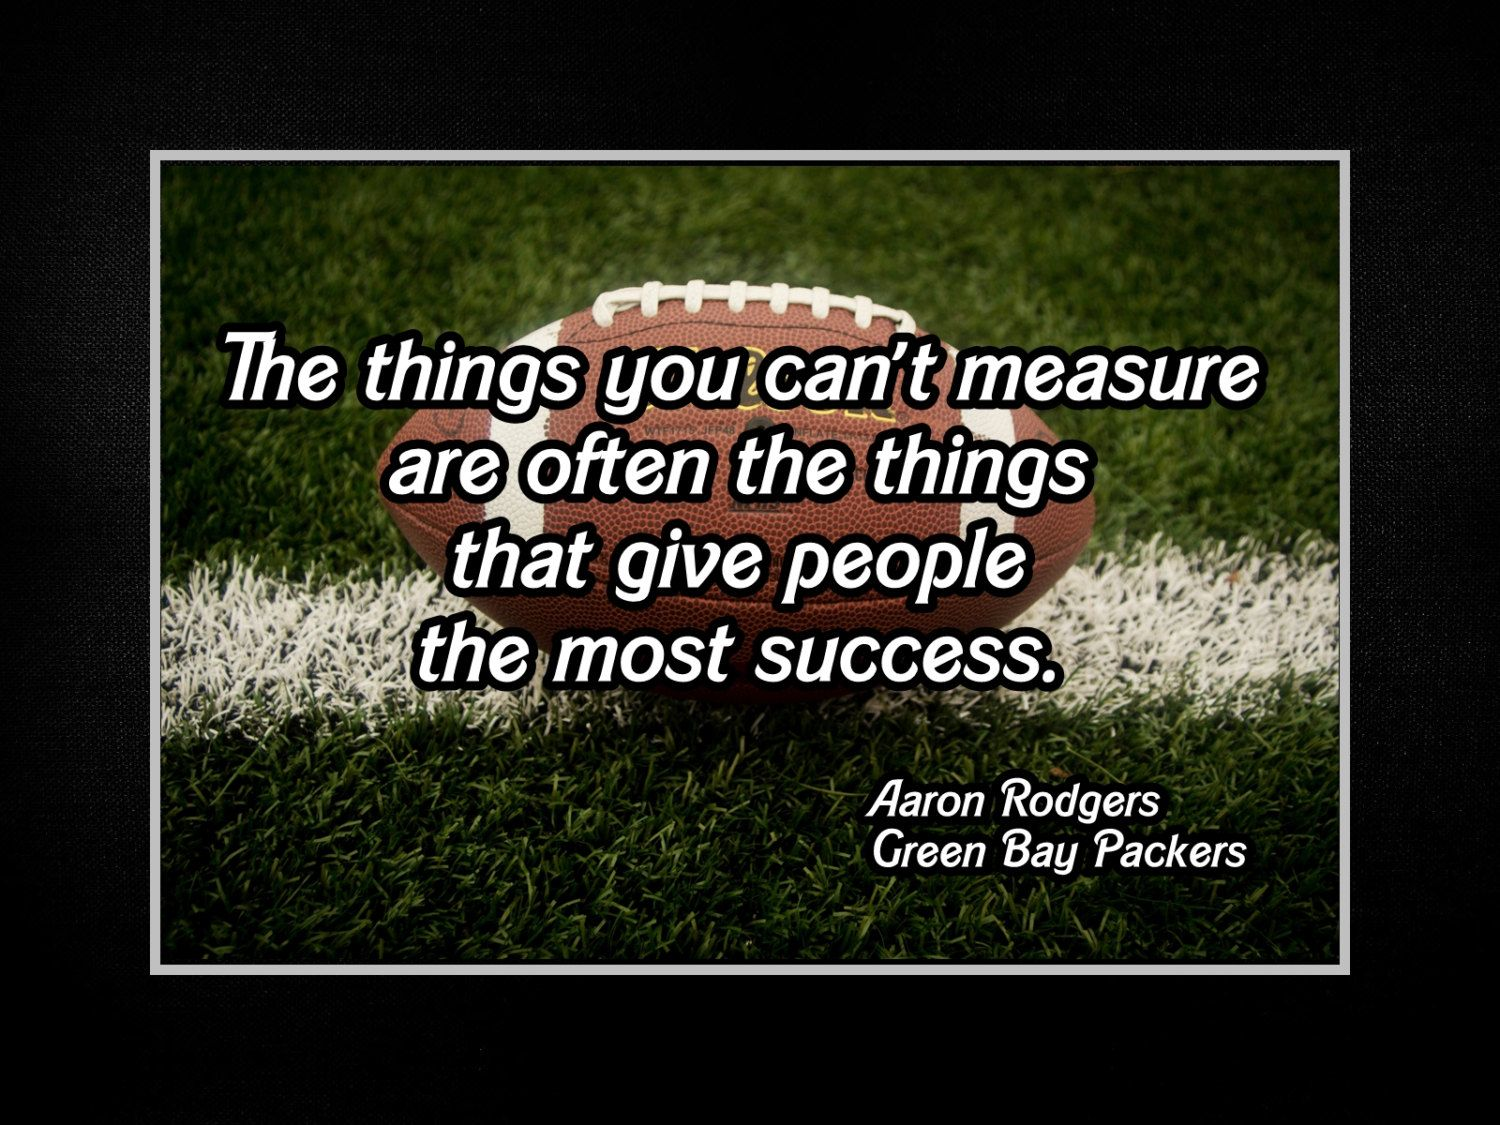 Aaron Rodgers Green Bay Packers Photo Quote Poster Wall Art Print 8x11 8x14 Things You Can T Measur Quote Posters Photo Quotes